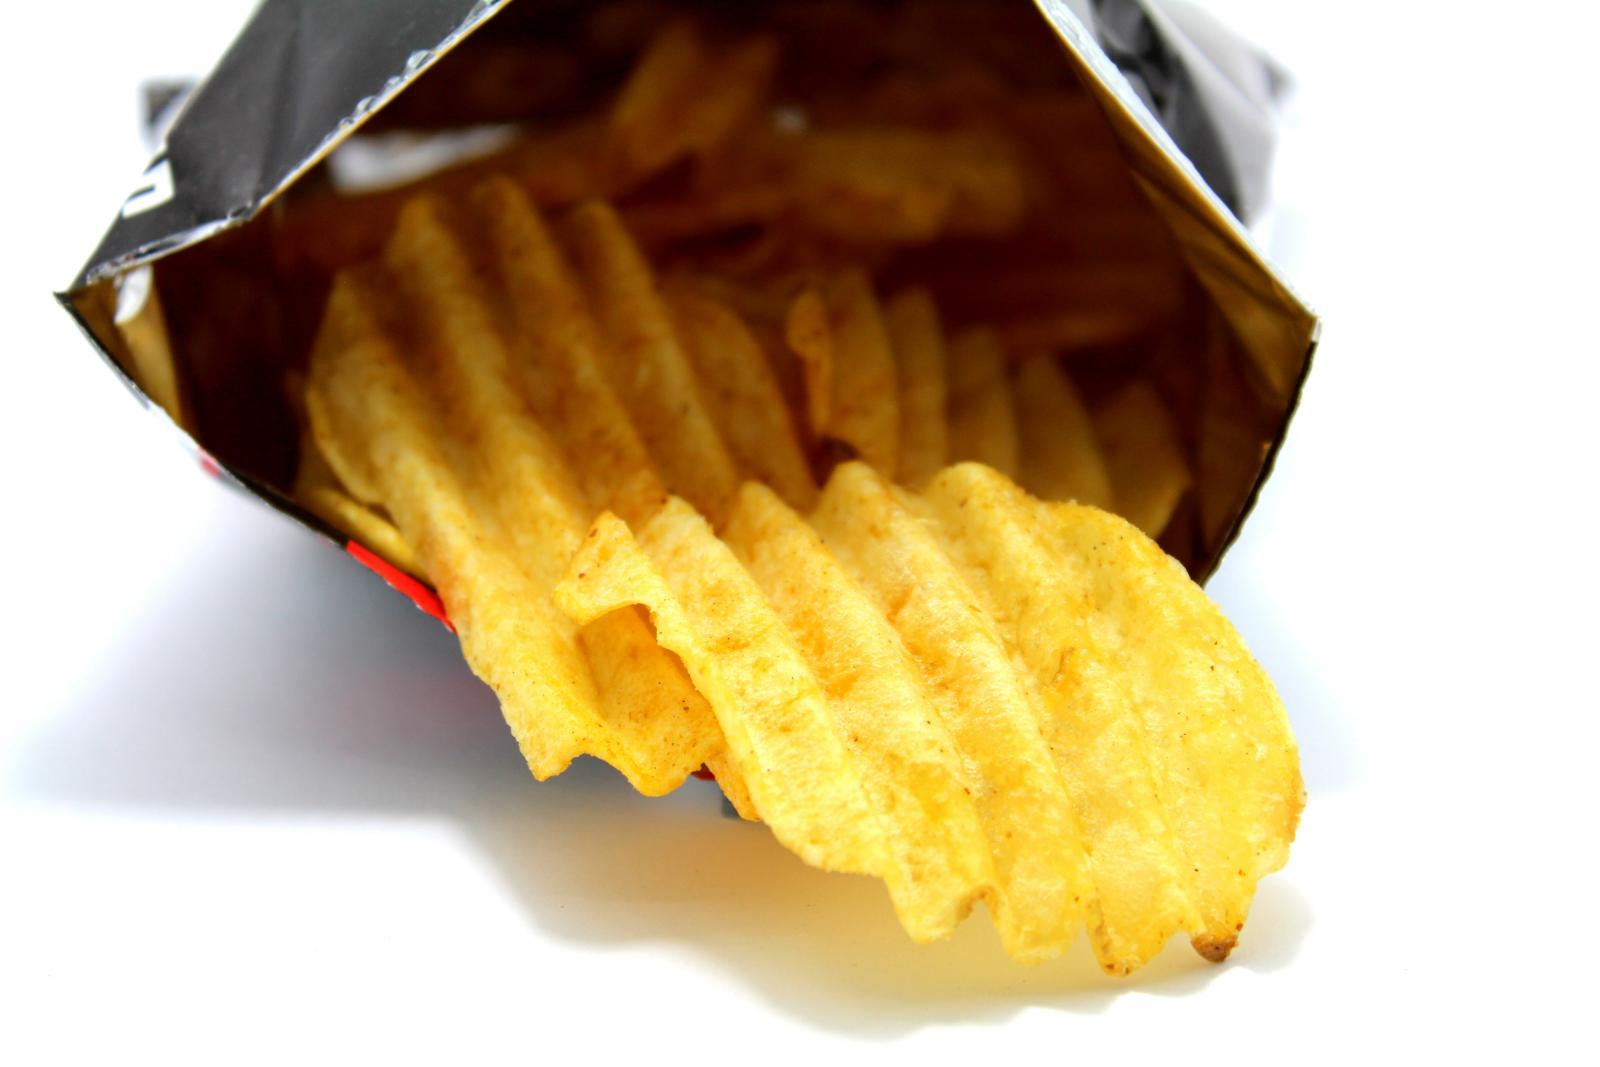 Packet of crisps. Photo credit: Pexels